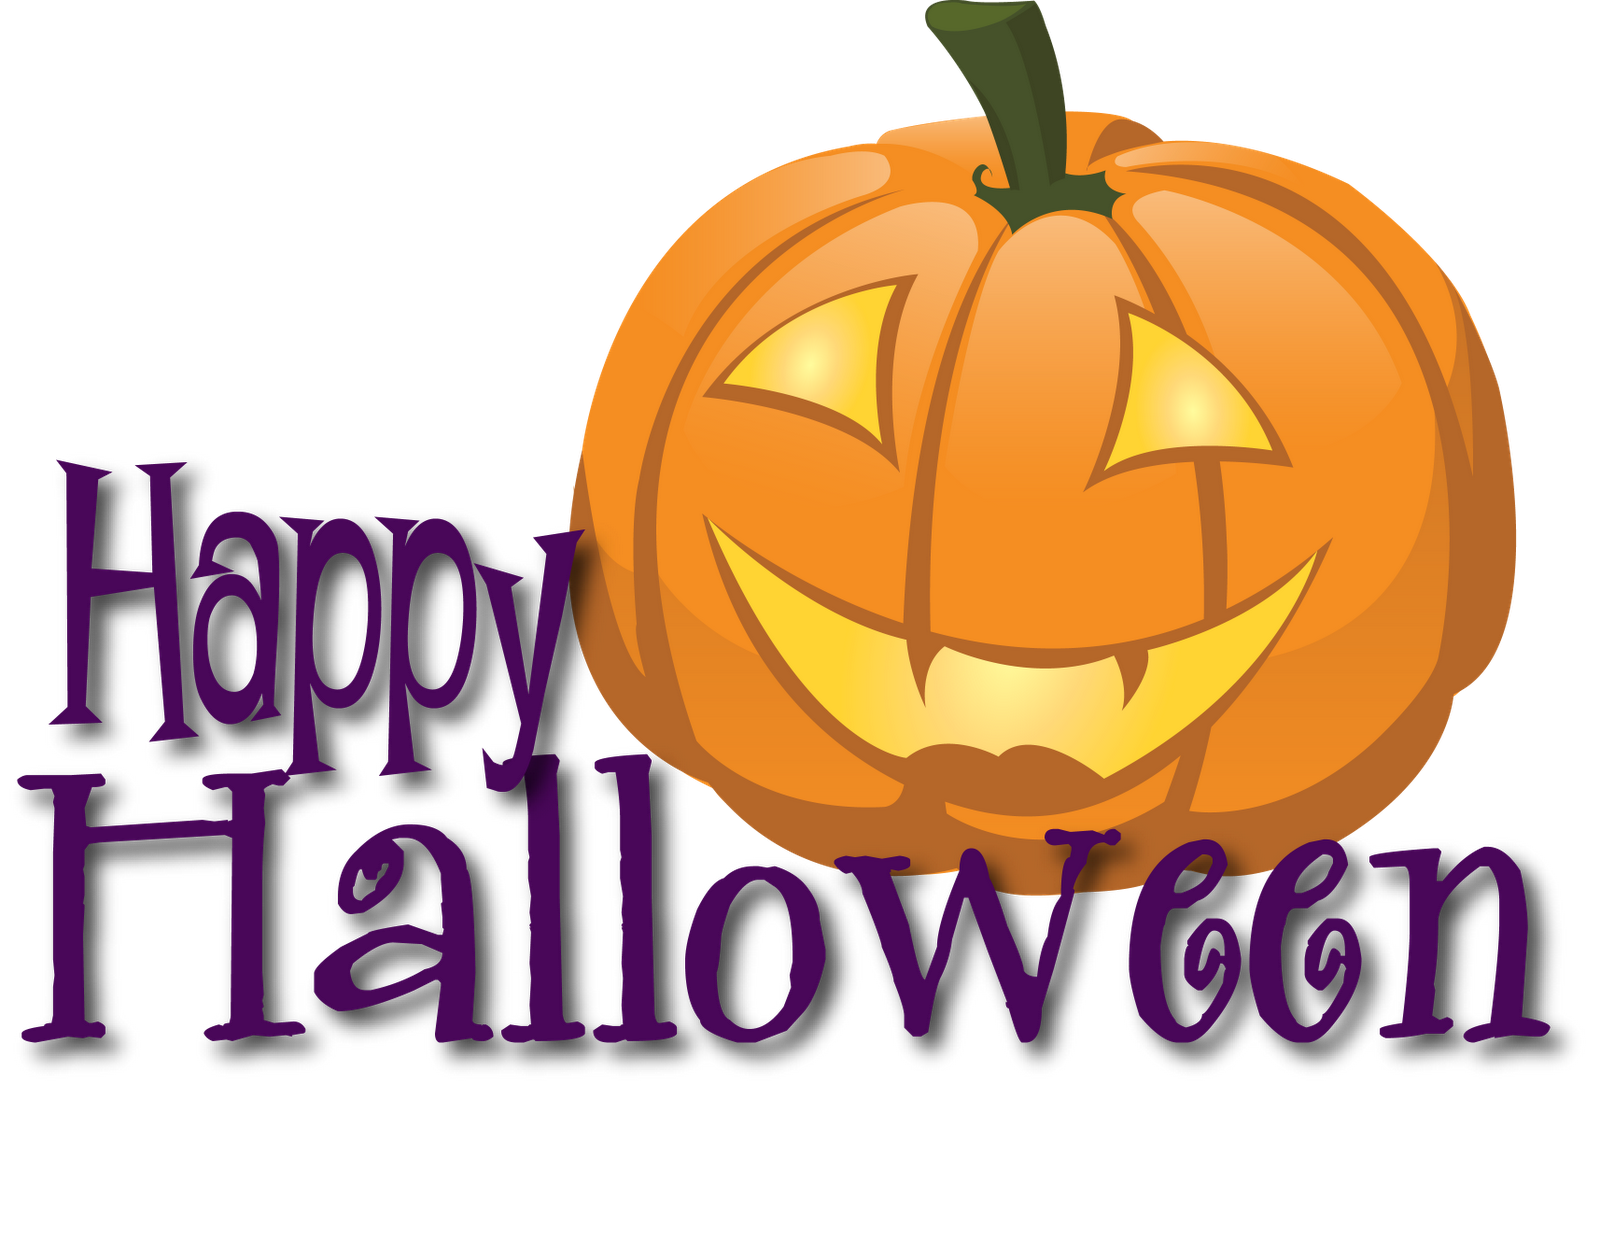 Invicta self defense tips. Clipart halloween safety